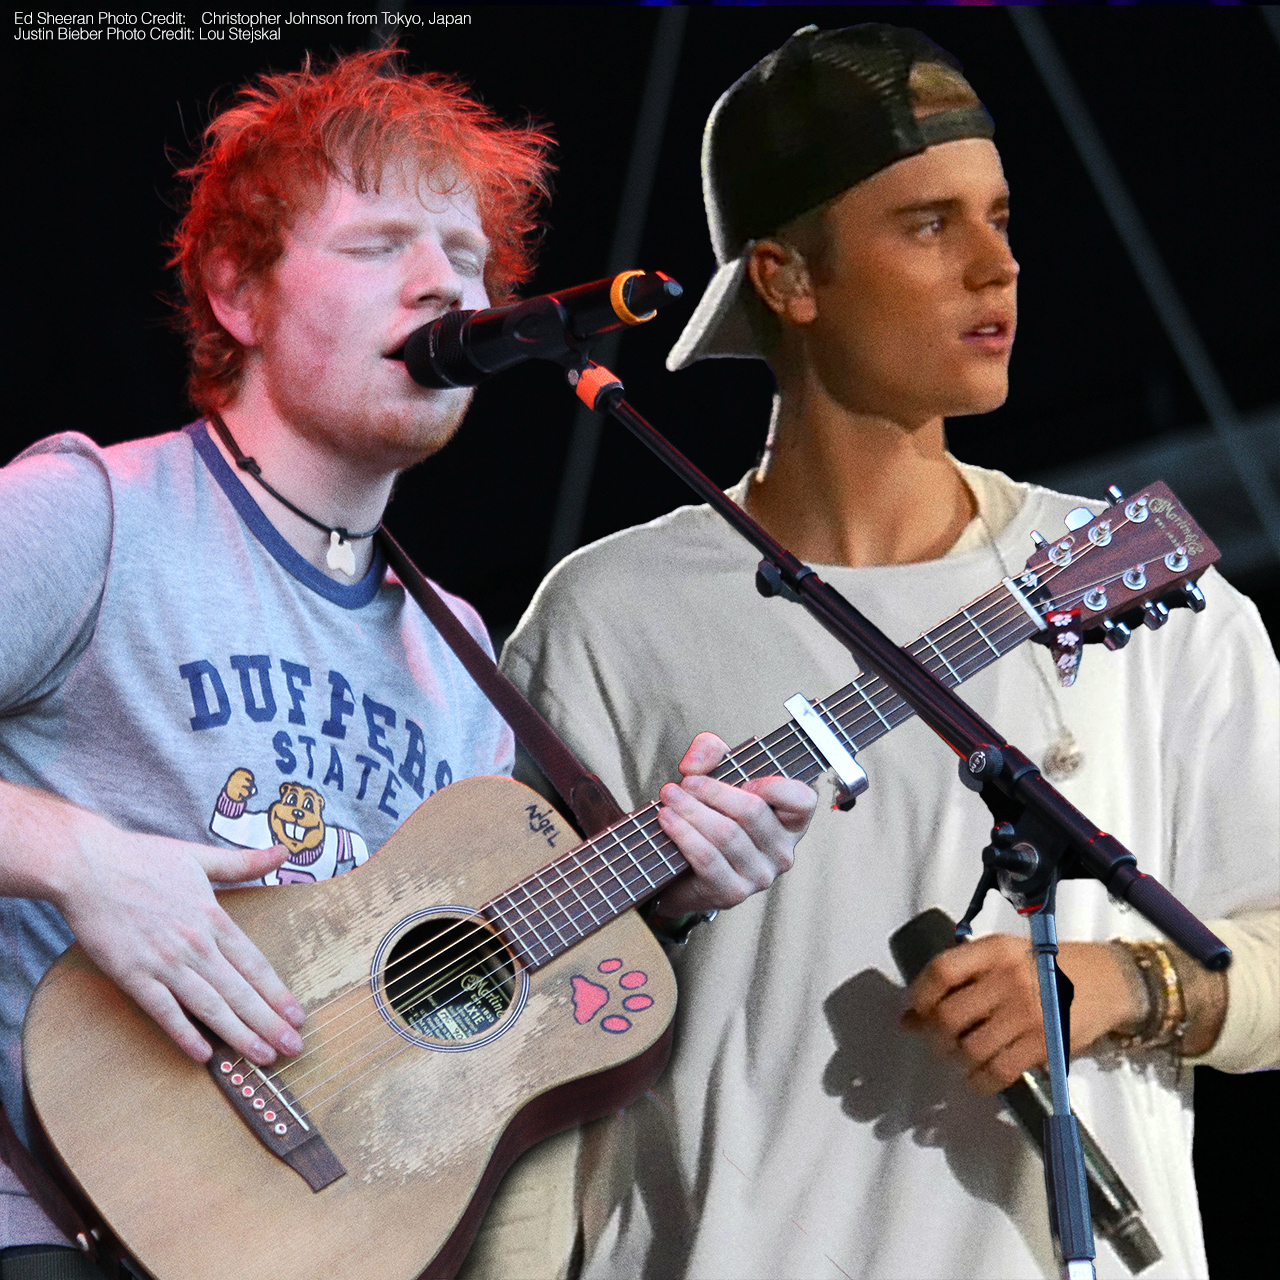 Here Are Some Details on Ed Sheeran and Justin Bieber's New Track